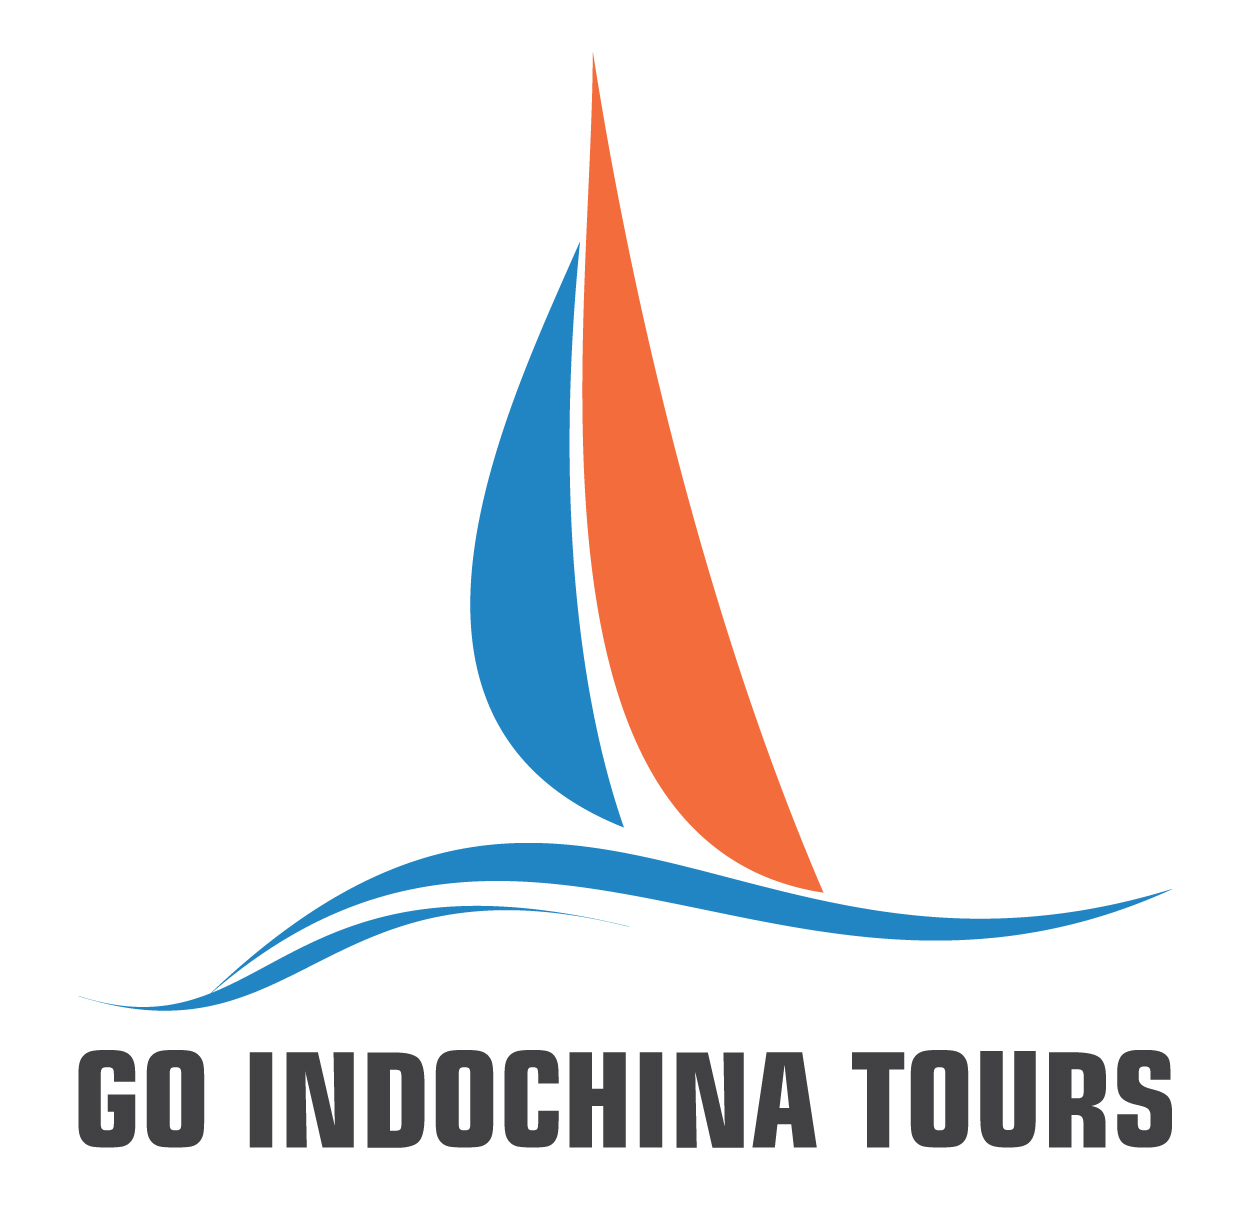 Go Indochina Tours